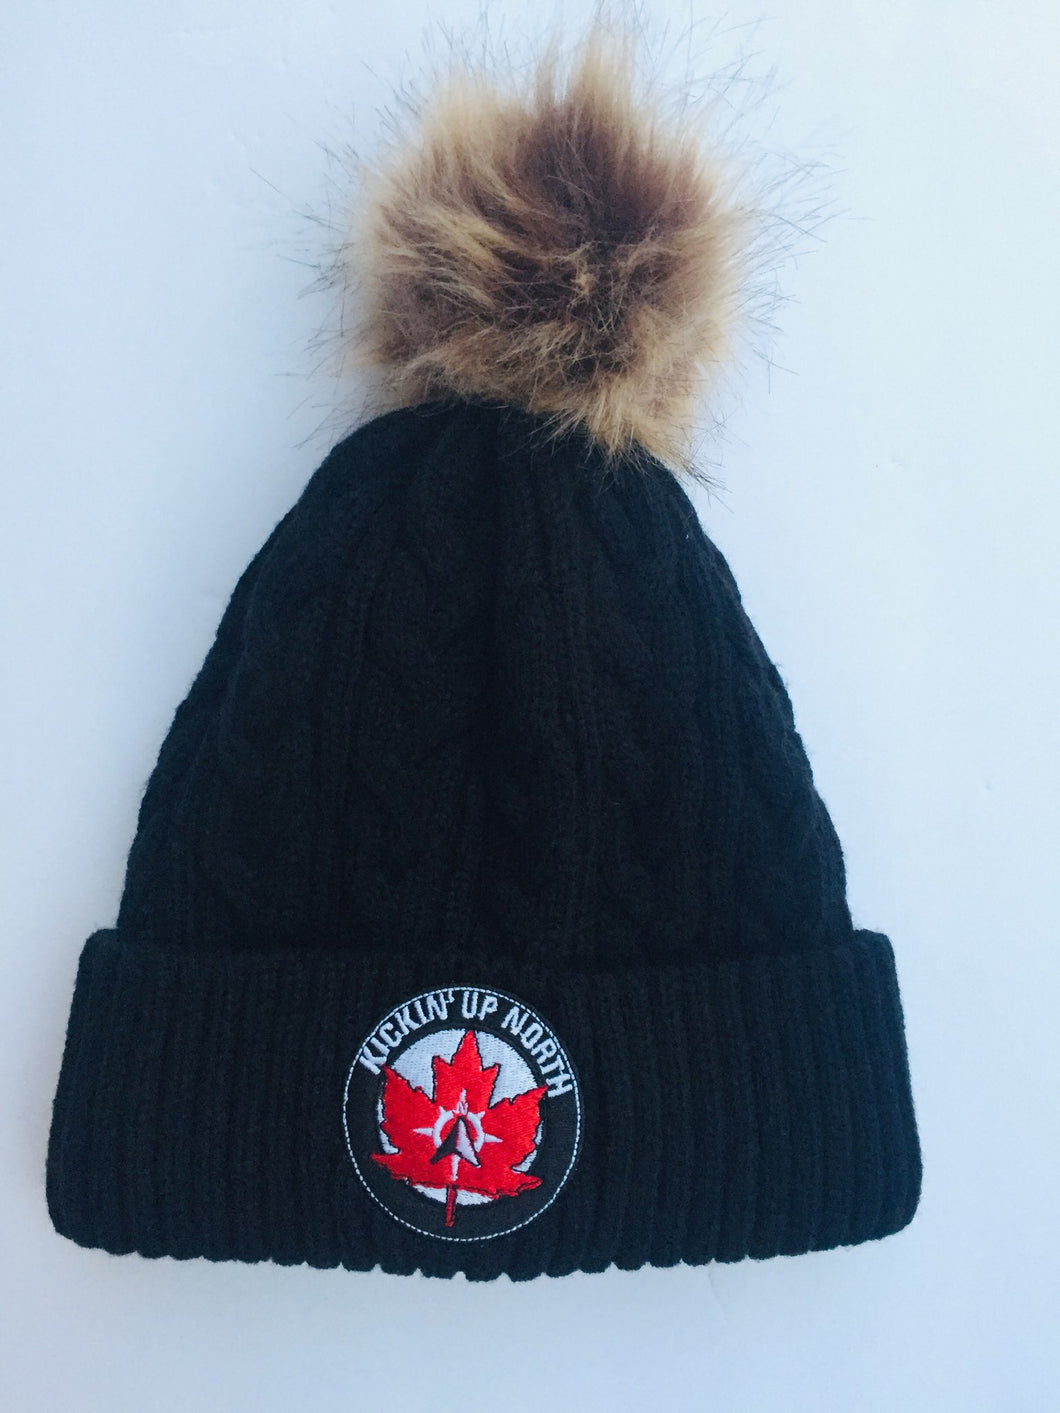 Kickin' Up North Pom Pom Winter Hat